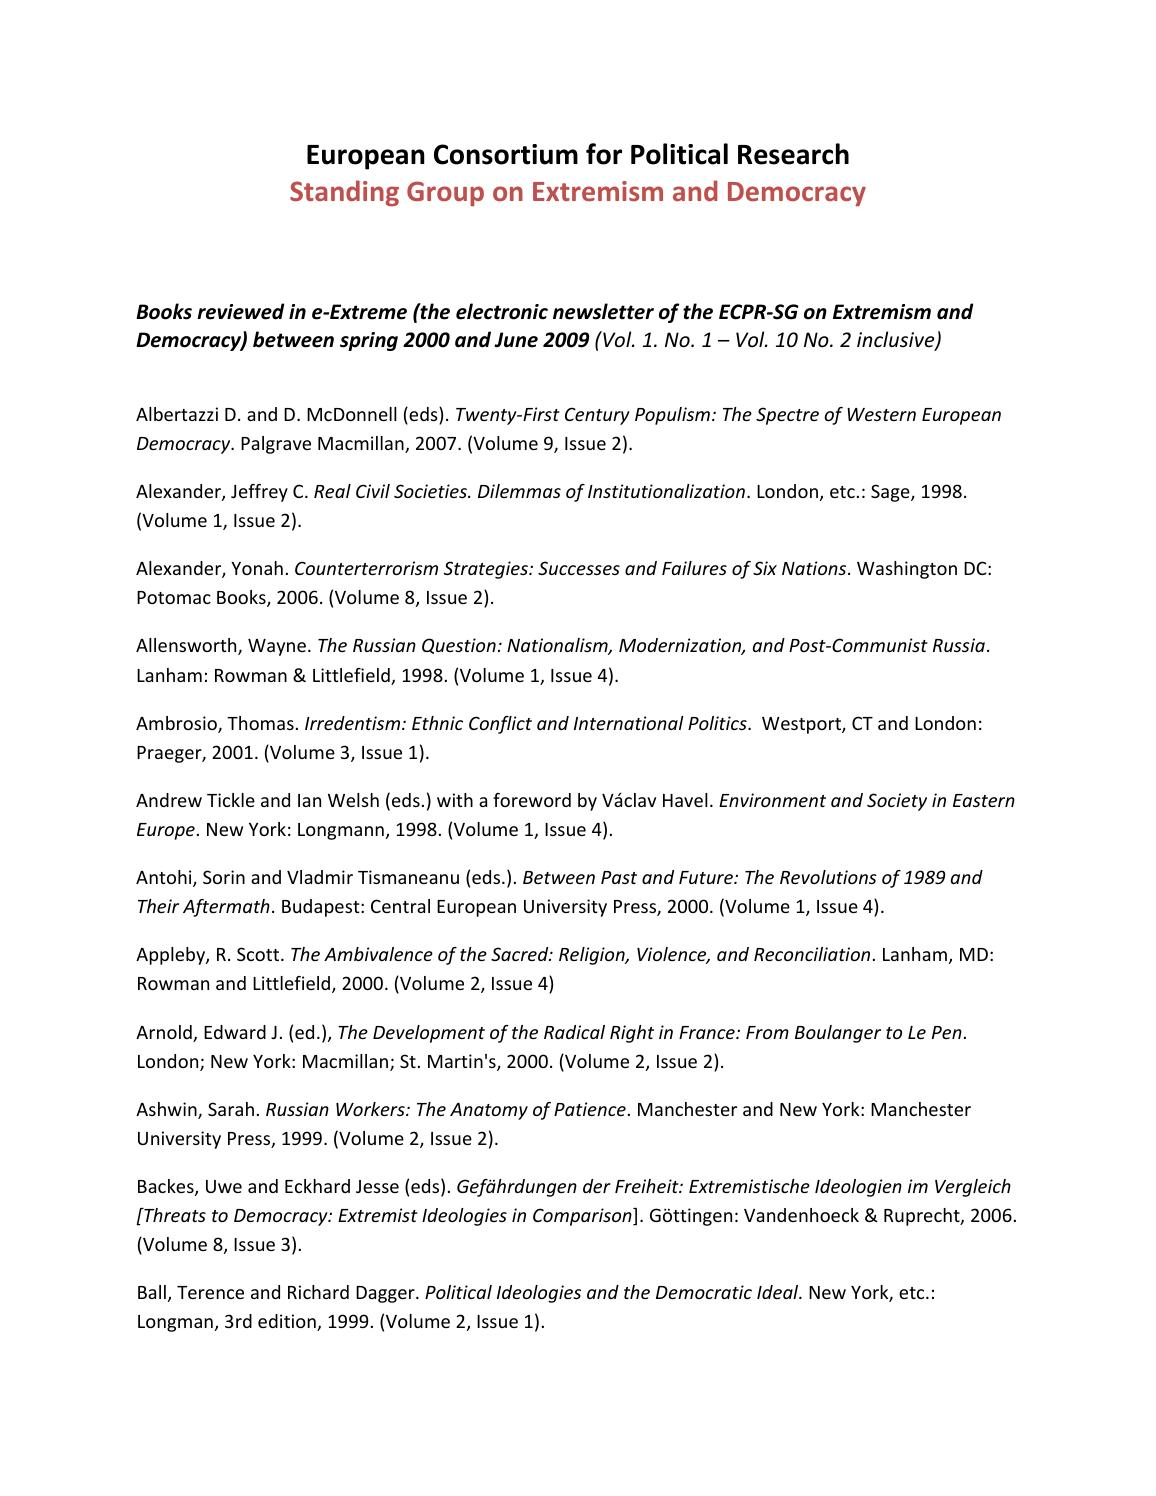 Index of book reviews (2000 2009) by Extremism & Democracy - issuu